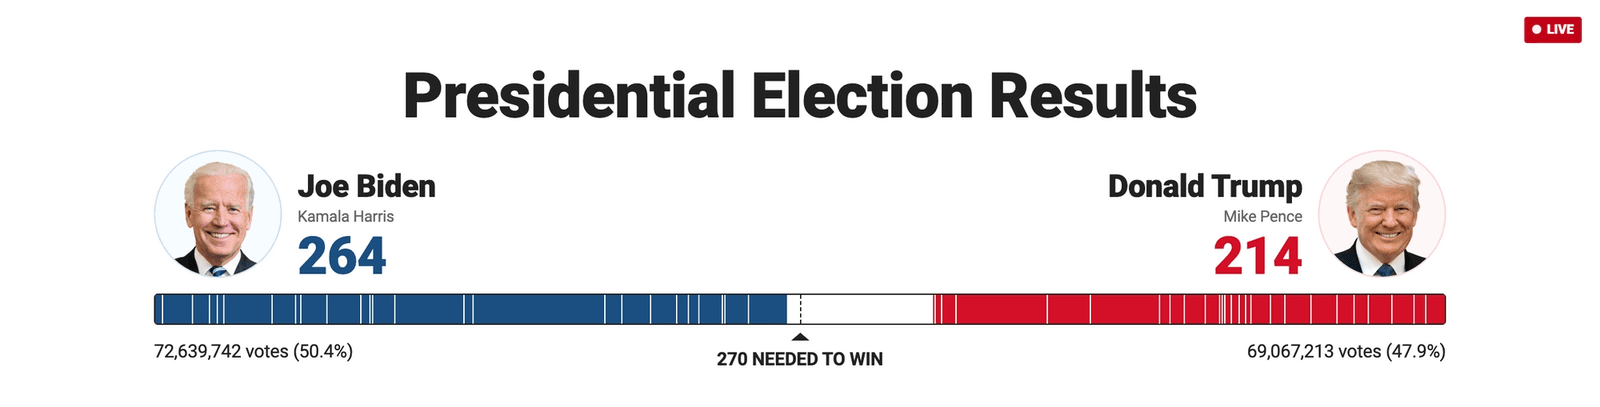 Fox News visualization: two bars, one in blue for Biden and a much shorter one in red for Trump, representing the amount of electoral college votes for each candidate